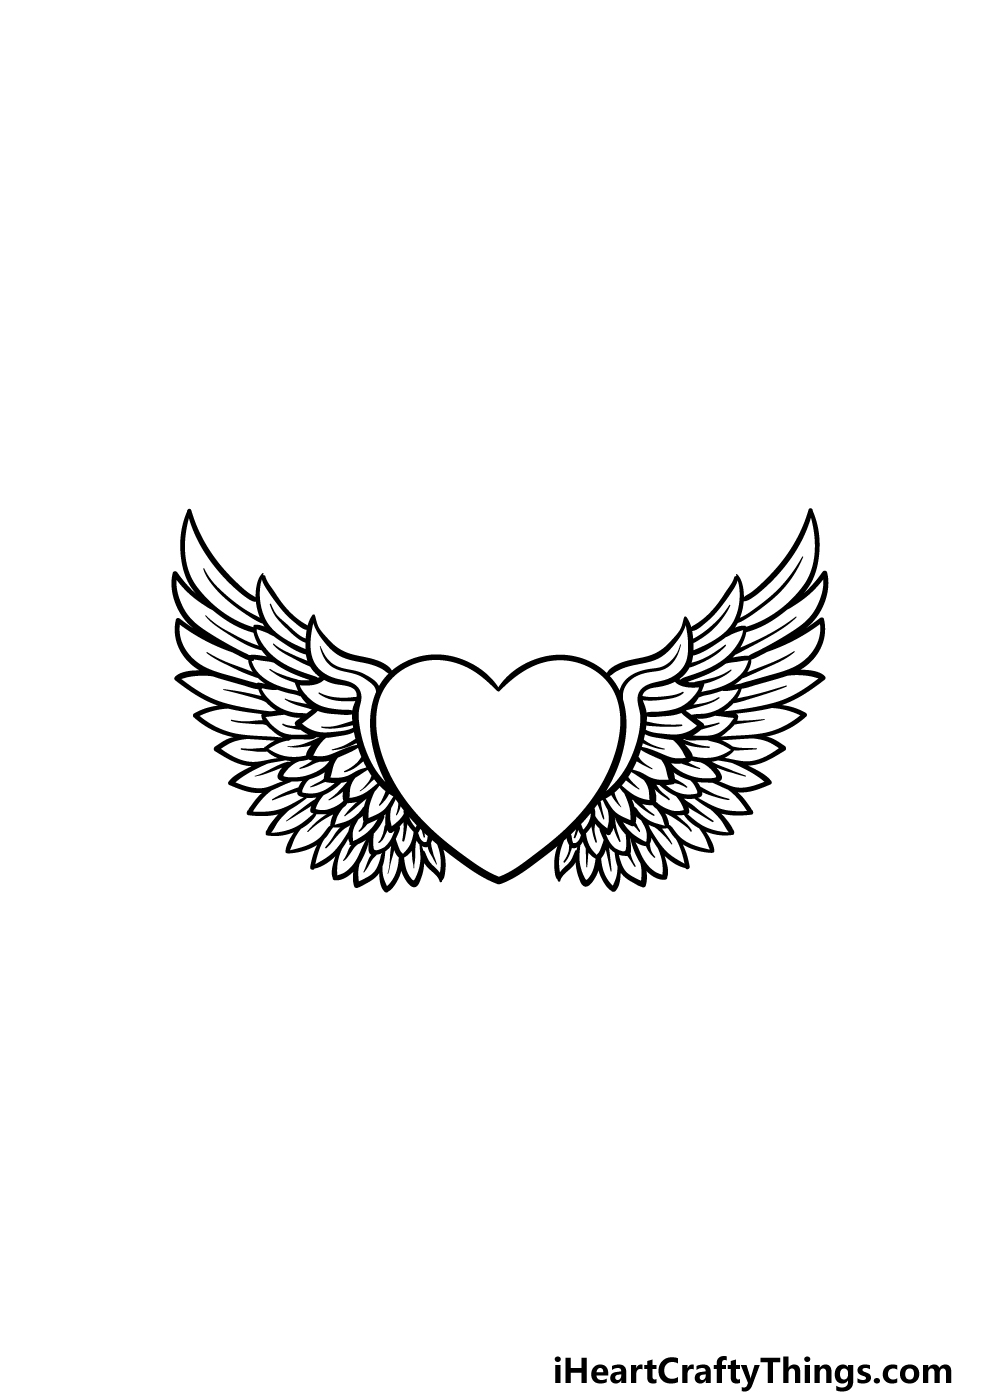 drawing a heart with wings step 5